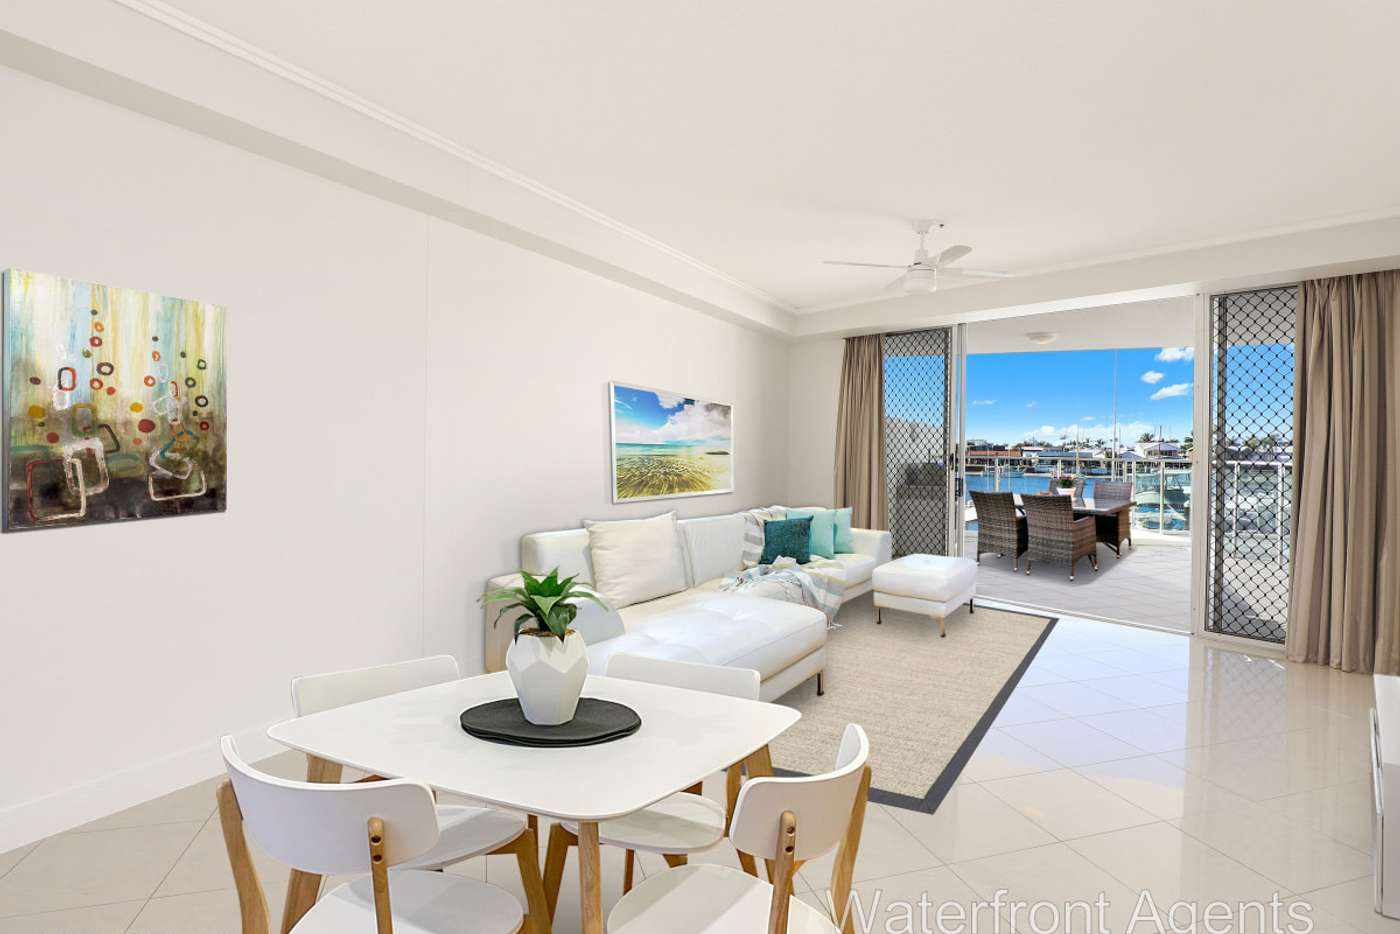 Main view of Homely apartment listing, 101/11 Nicklin Way, Minyama QLD 4575